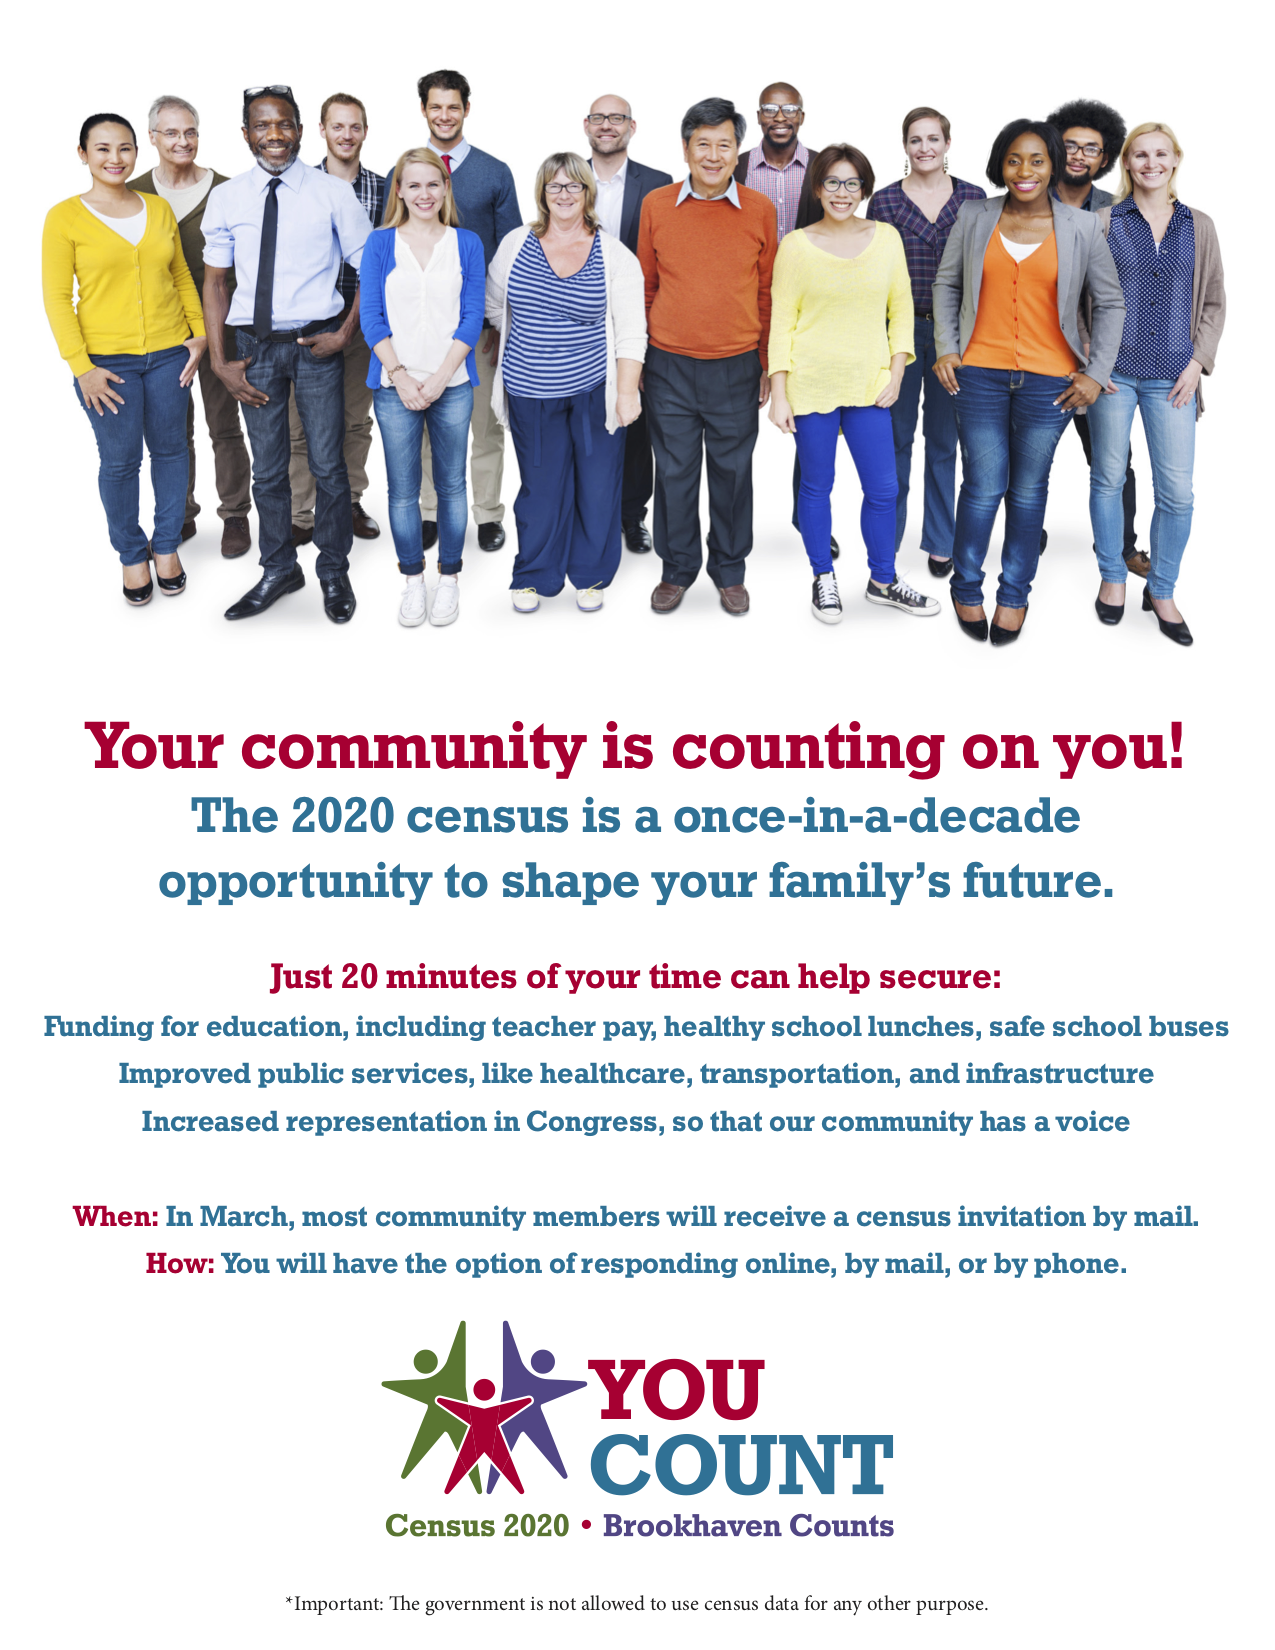 Flyer Lenz Created for the Brookhaven Census. It has a stock image of a diverse crowd of people standing together. The text is information about the census and it's importance.